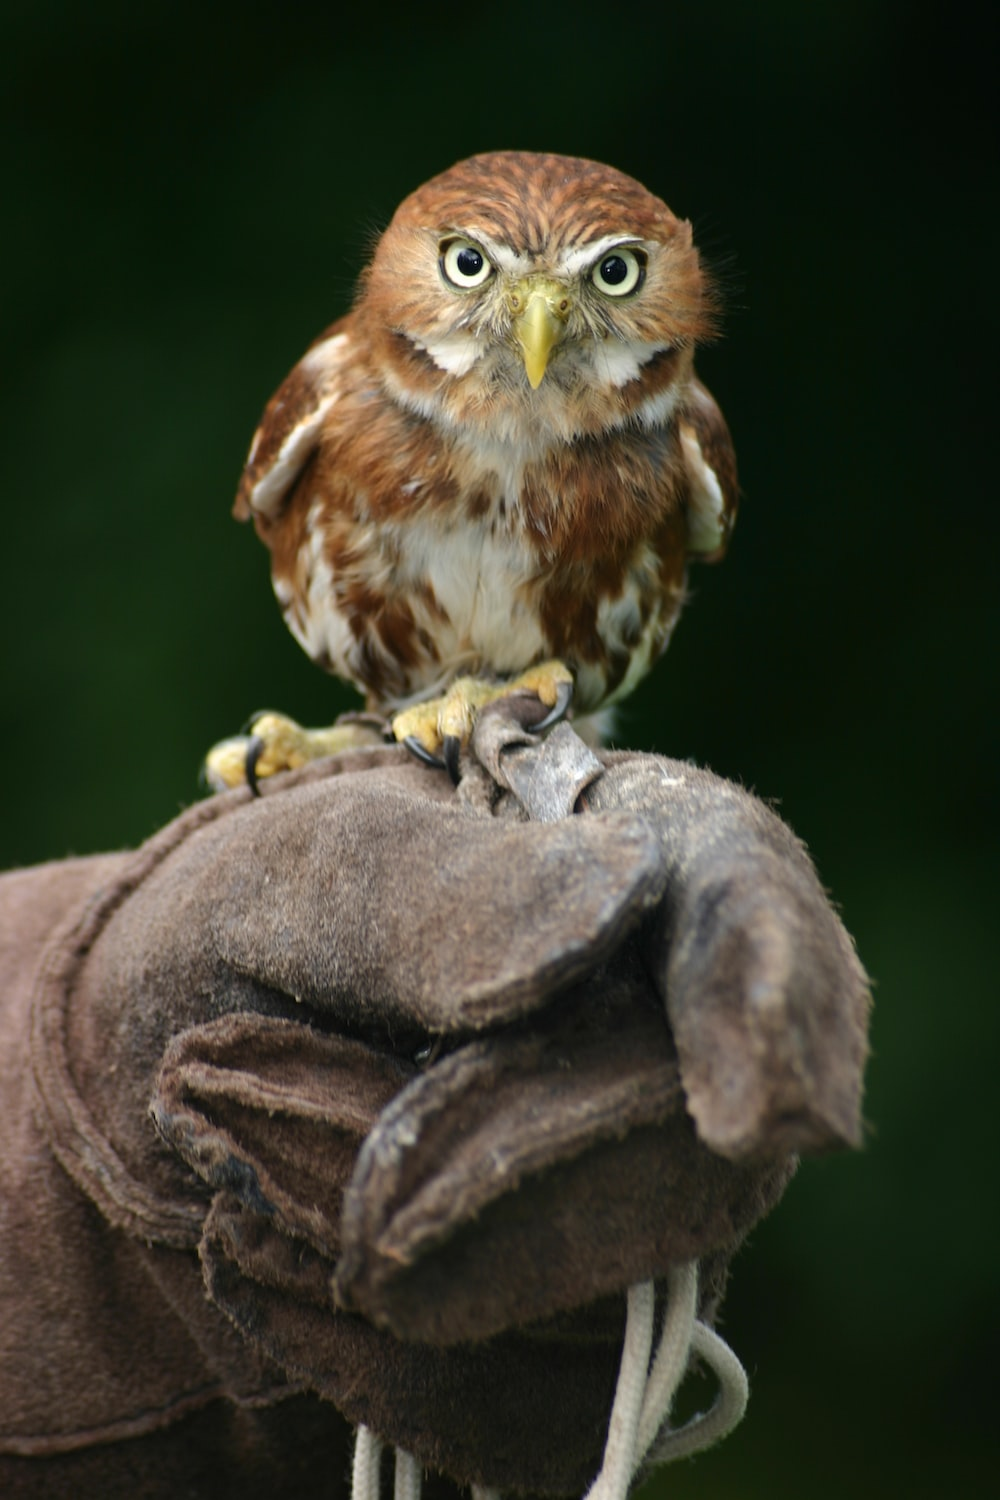 little owl pictures download free images on unsplash